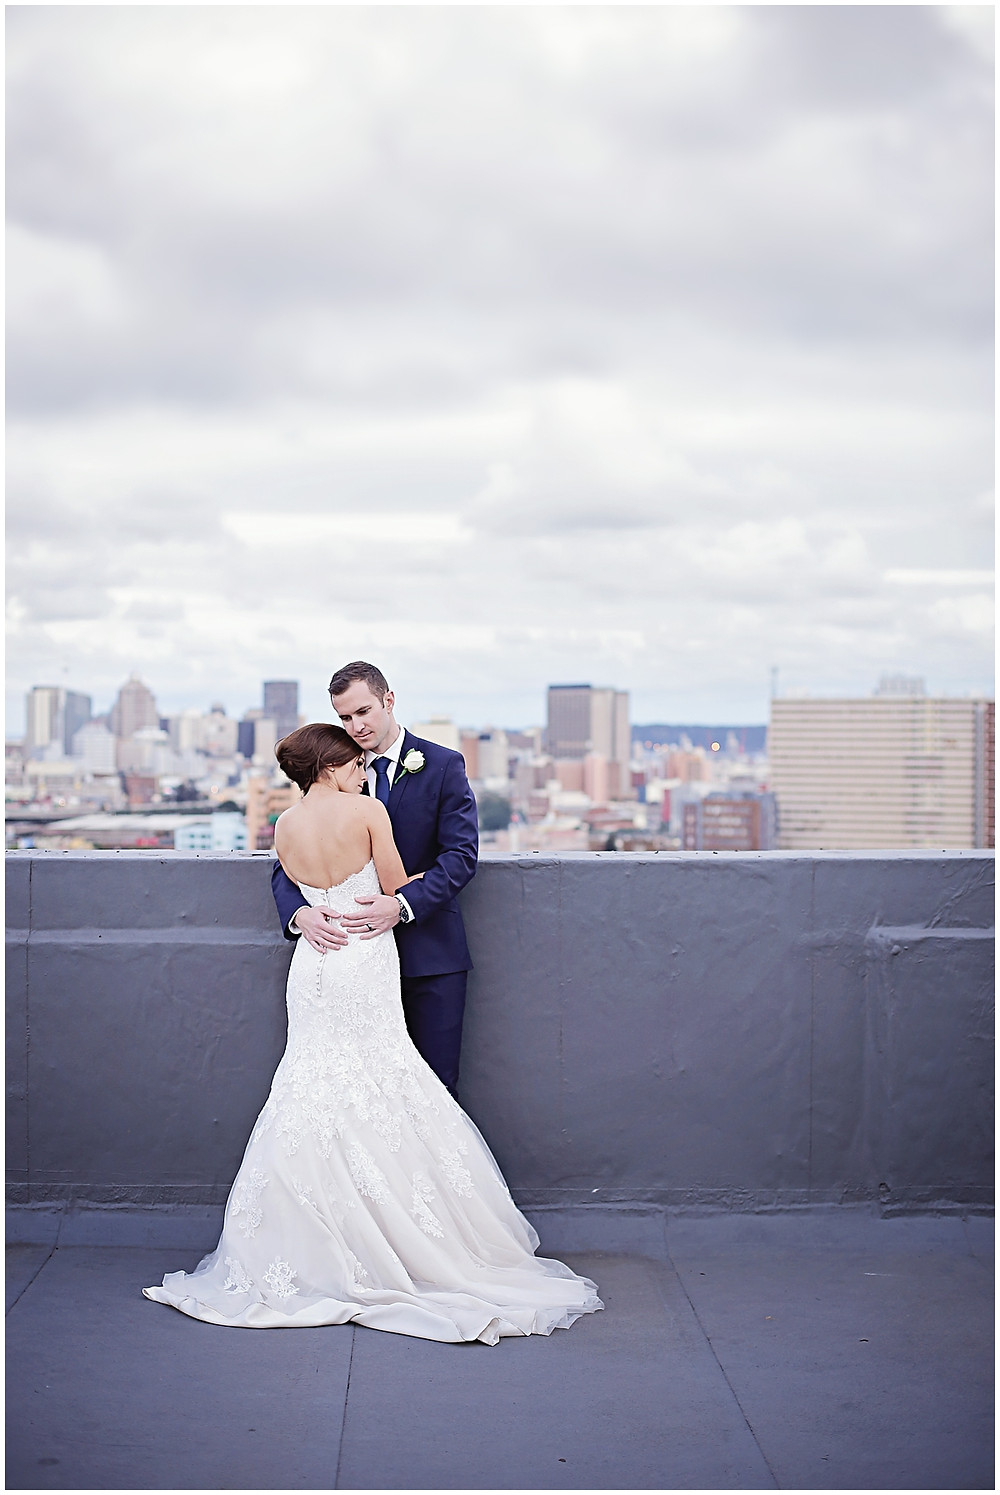 Brett + Nicole | Market | City Wedding_0056.jpg